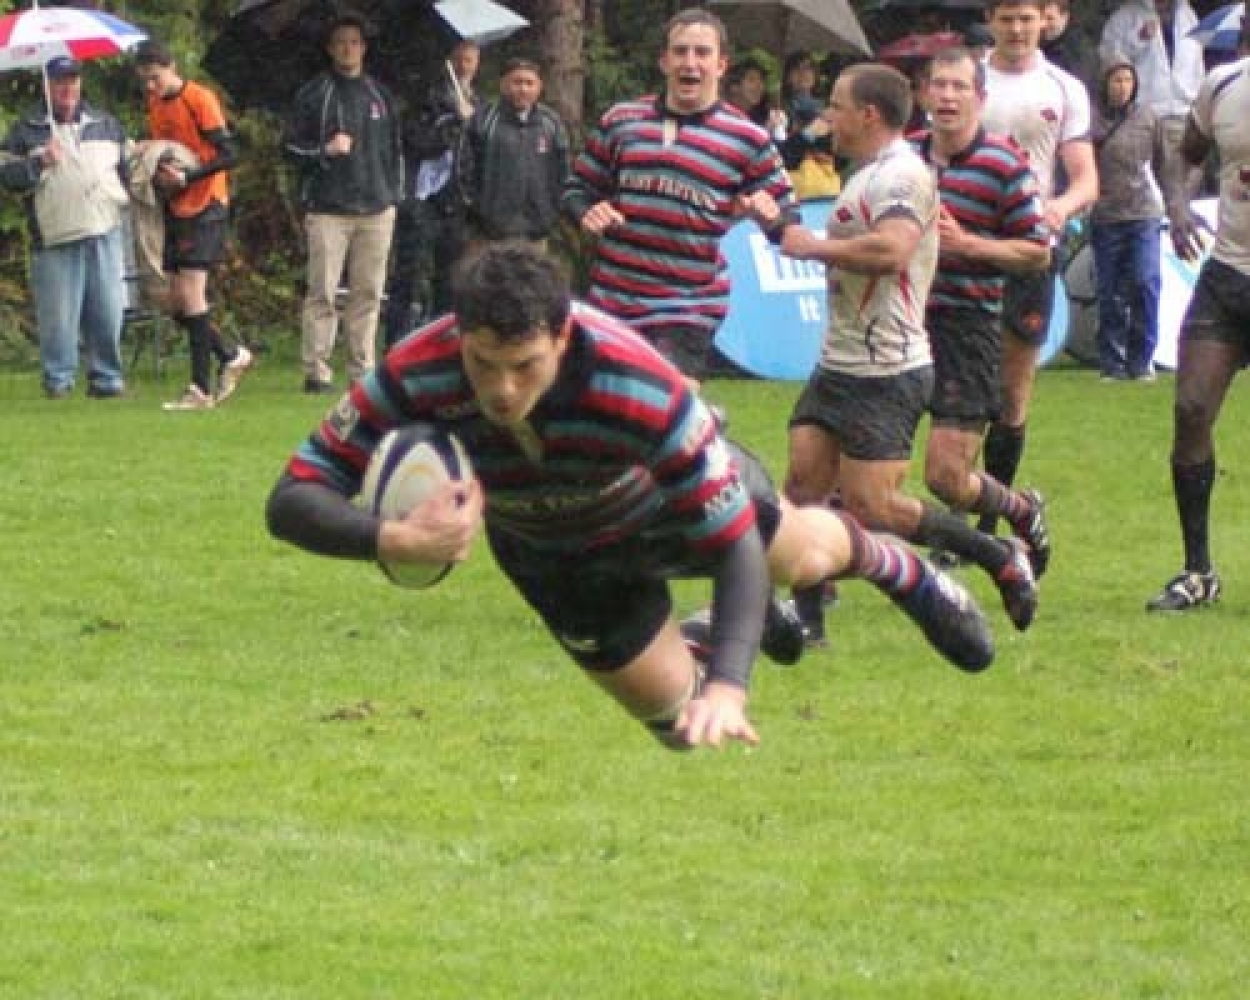 SATURDAYS WERE MADE FOR RUGBY